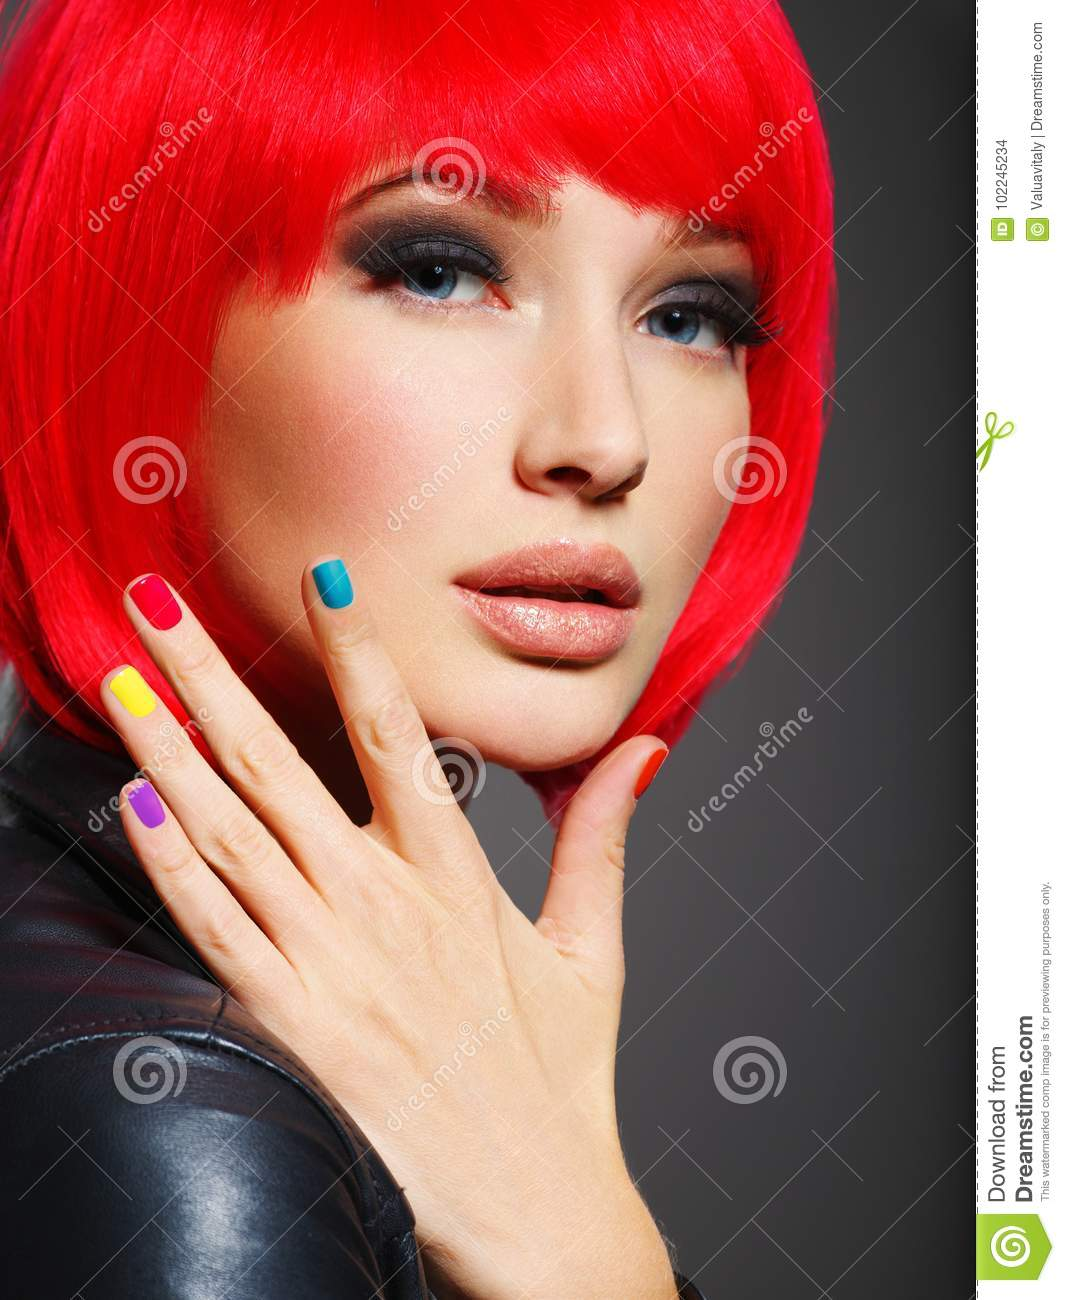 Gorgeous Fashion Woman With Red Hair And Black Jacket Stock Photo